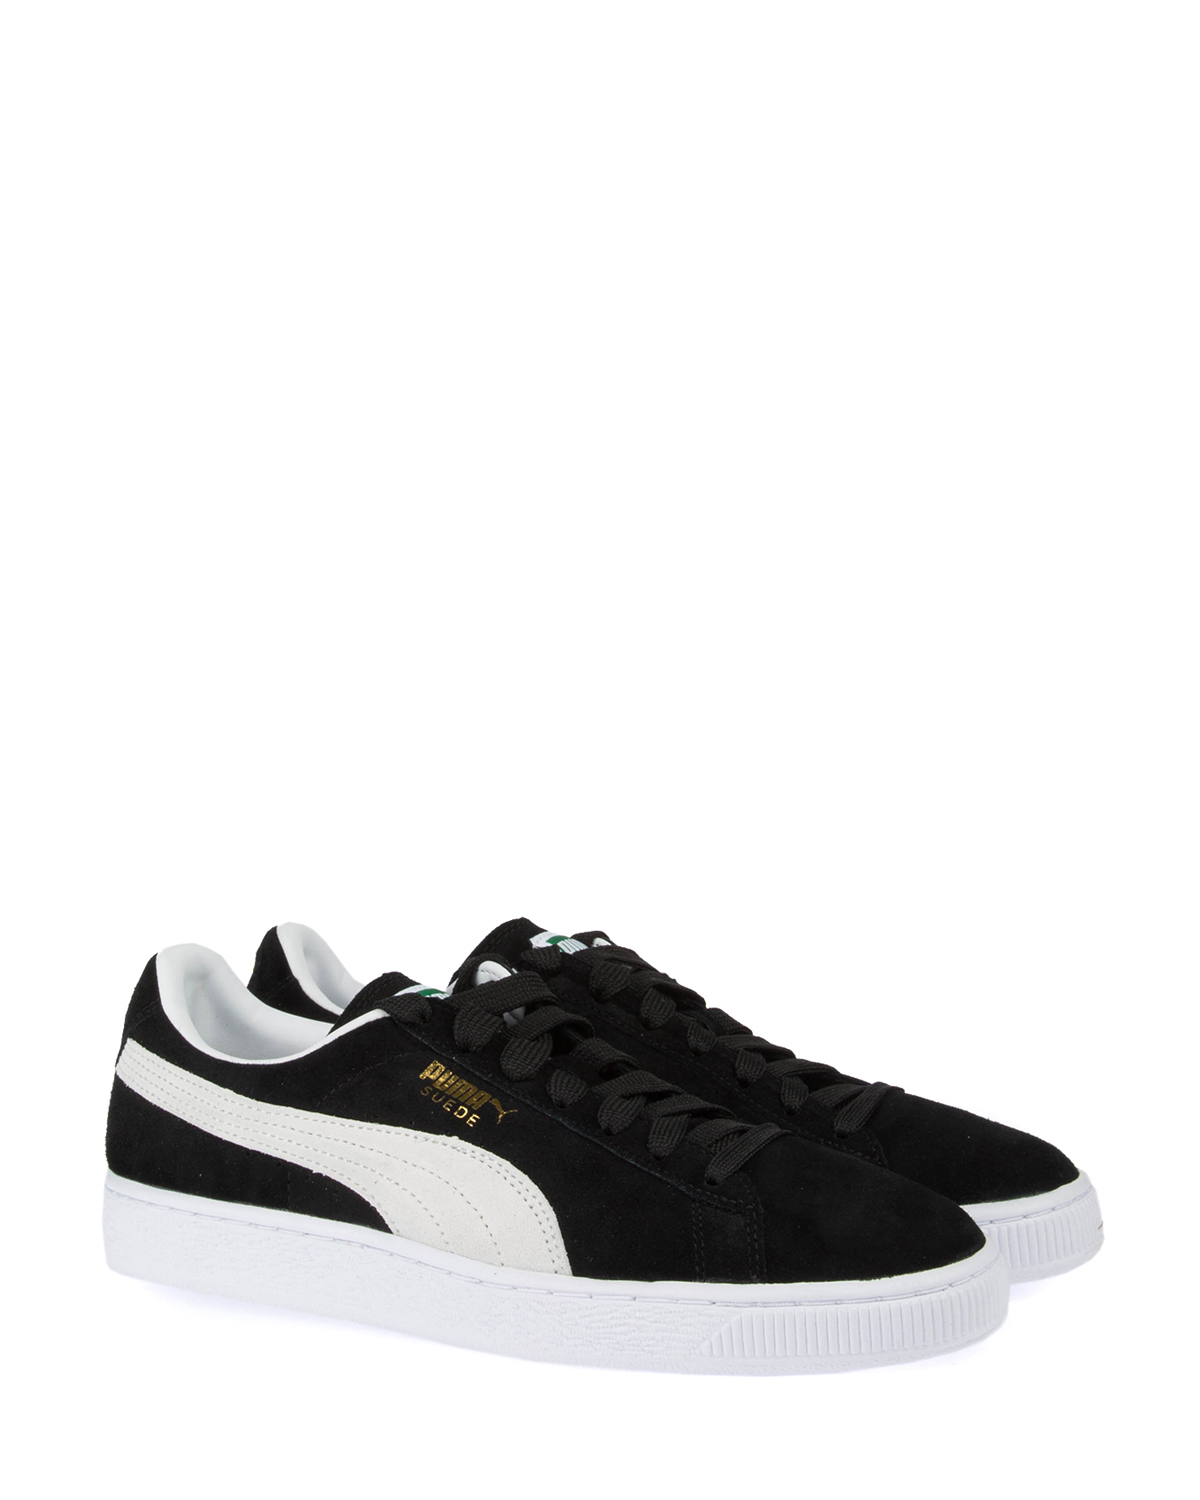 "PUMA Shoes ""Suede Classic+"" black white"